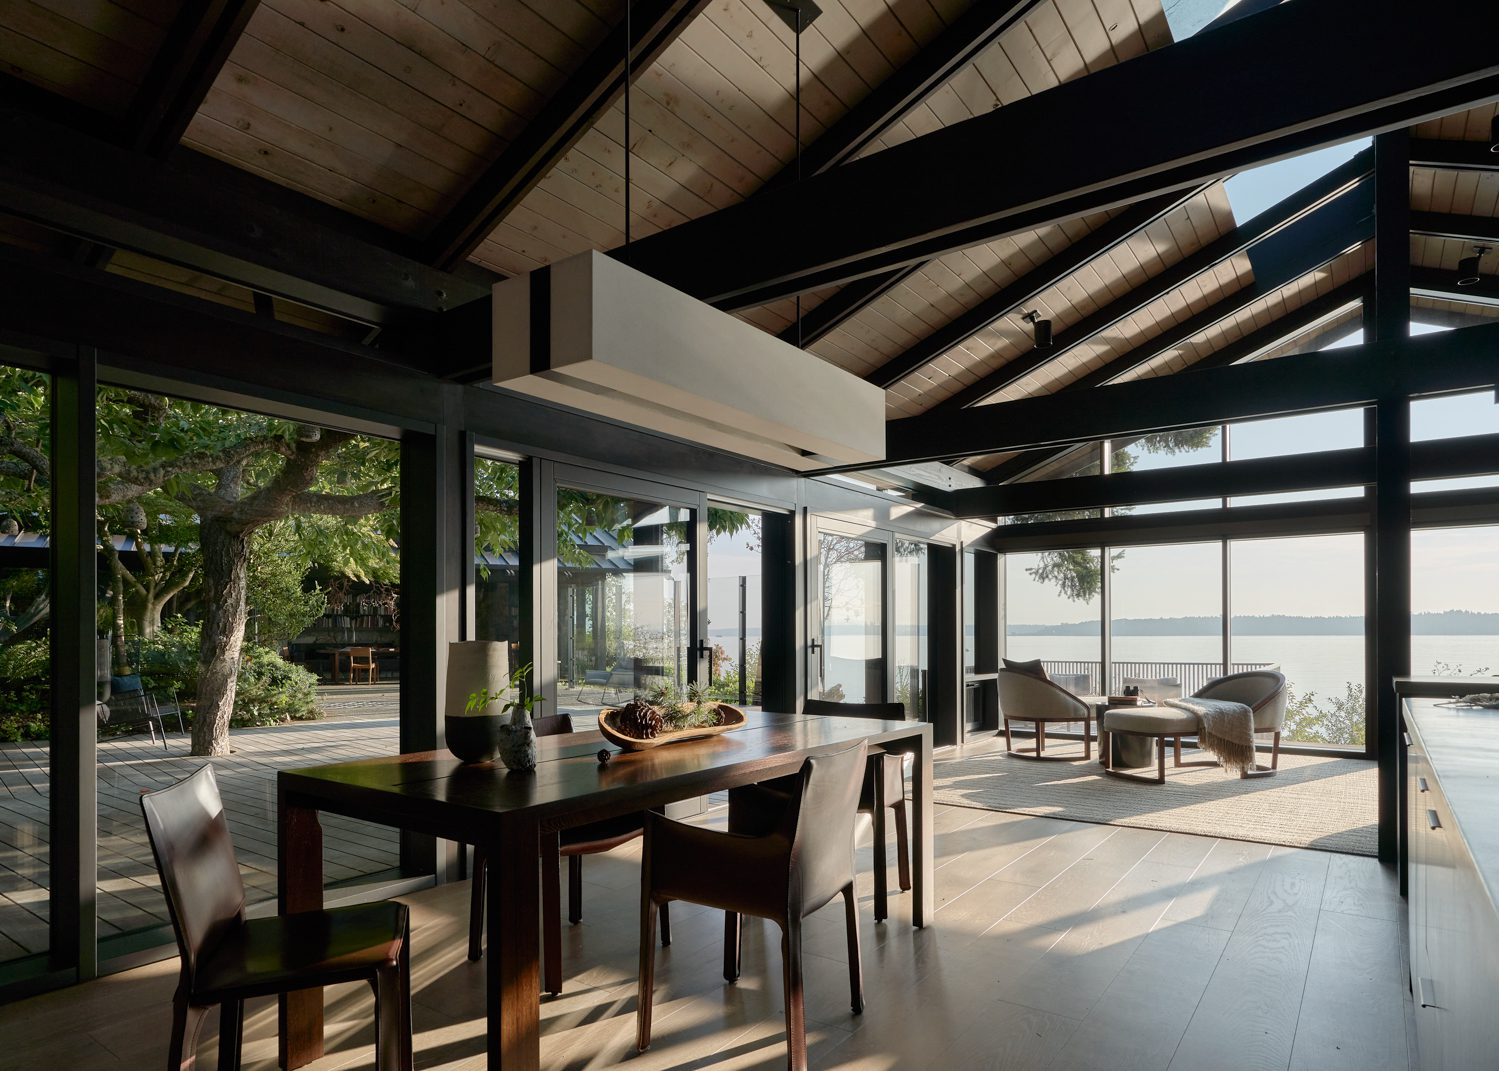 The indoor-outdoor dining area with views of Puget Sound.